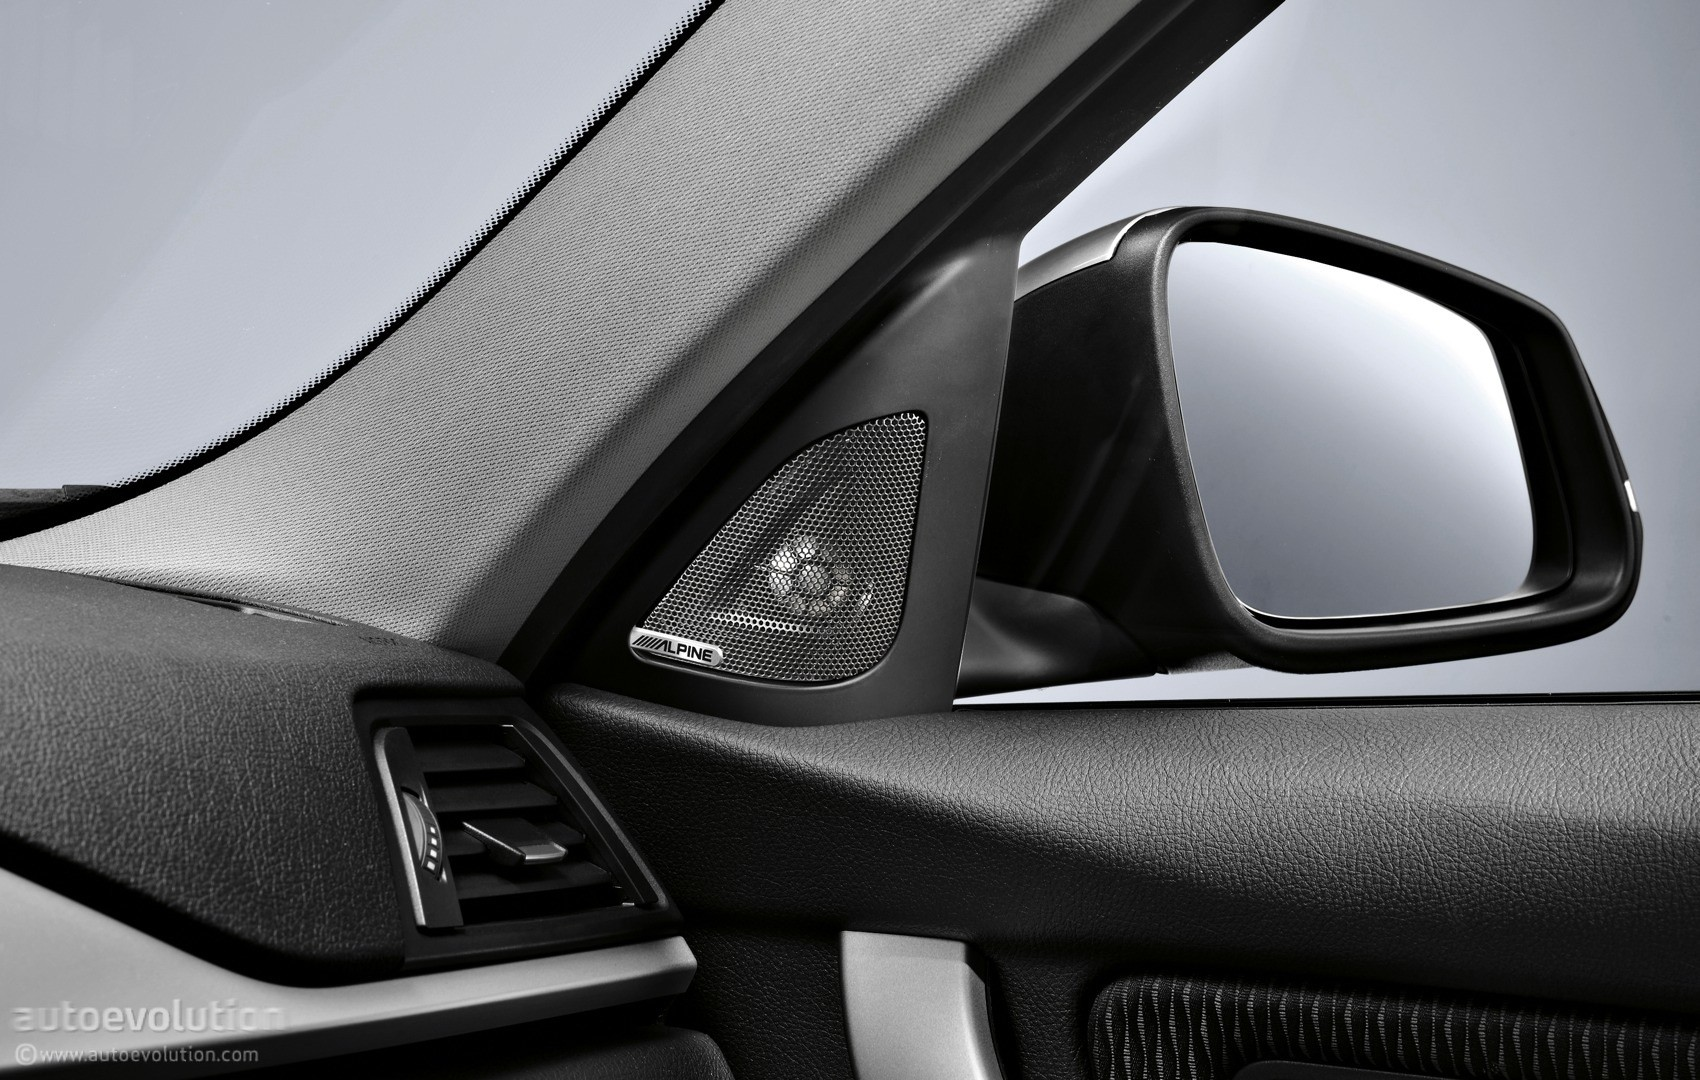 Bmw X5 Interior >> BMW Launches Impressive Range of Accessories as Christmas Gift Ideas - autoevolution